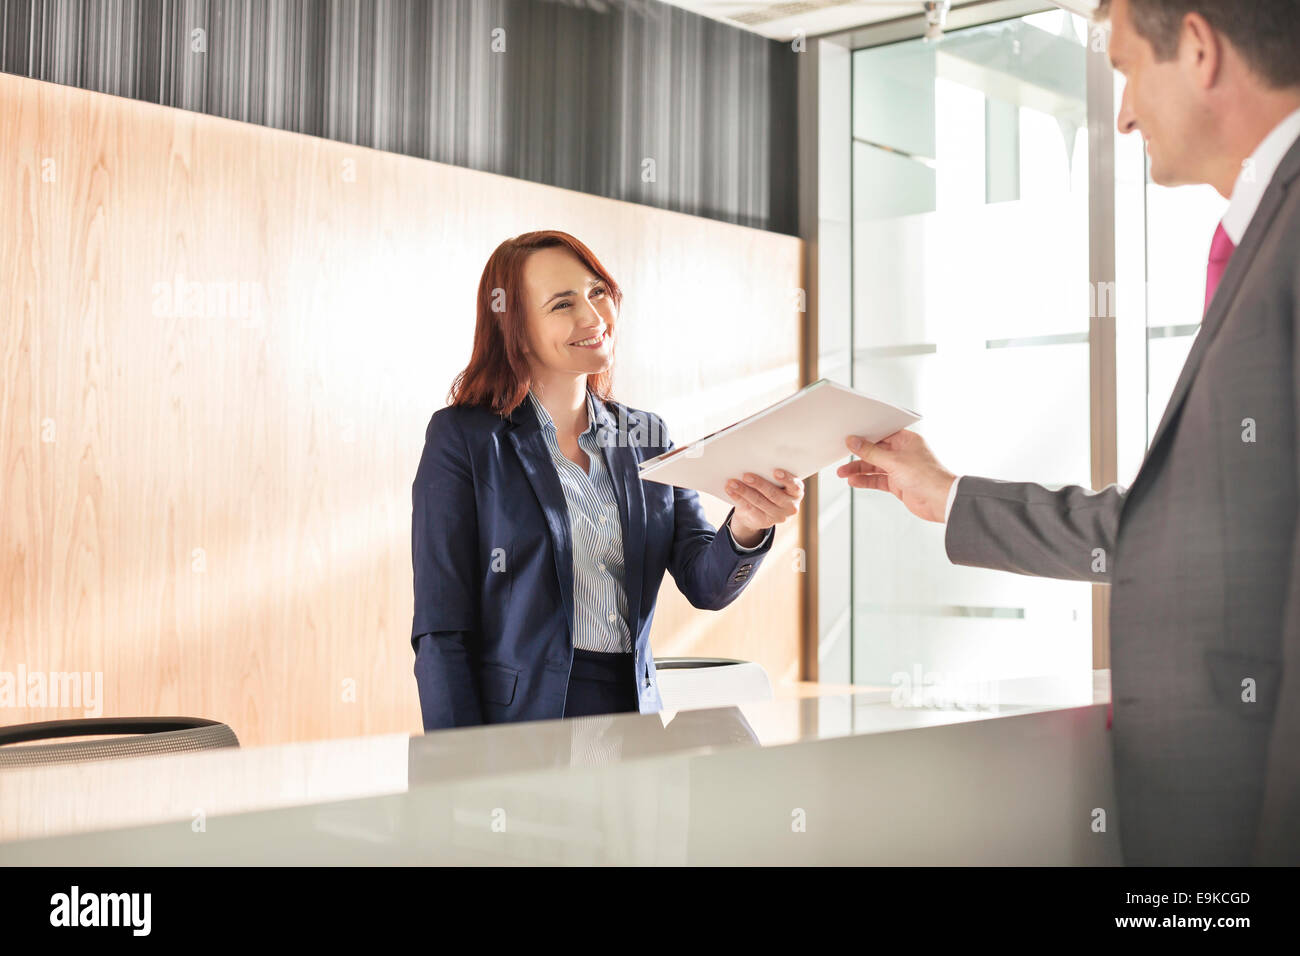 Businessman receiving document from receptionist in office - Stock Image